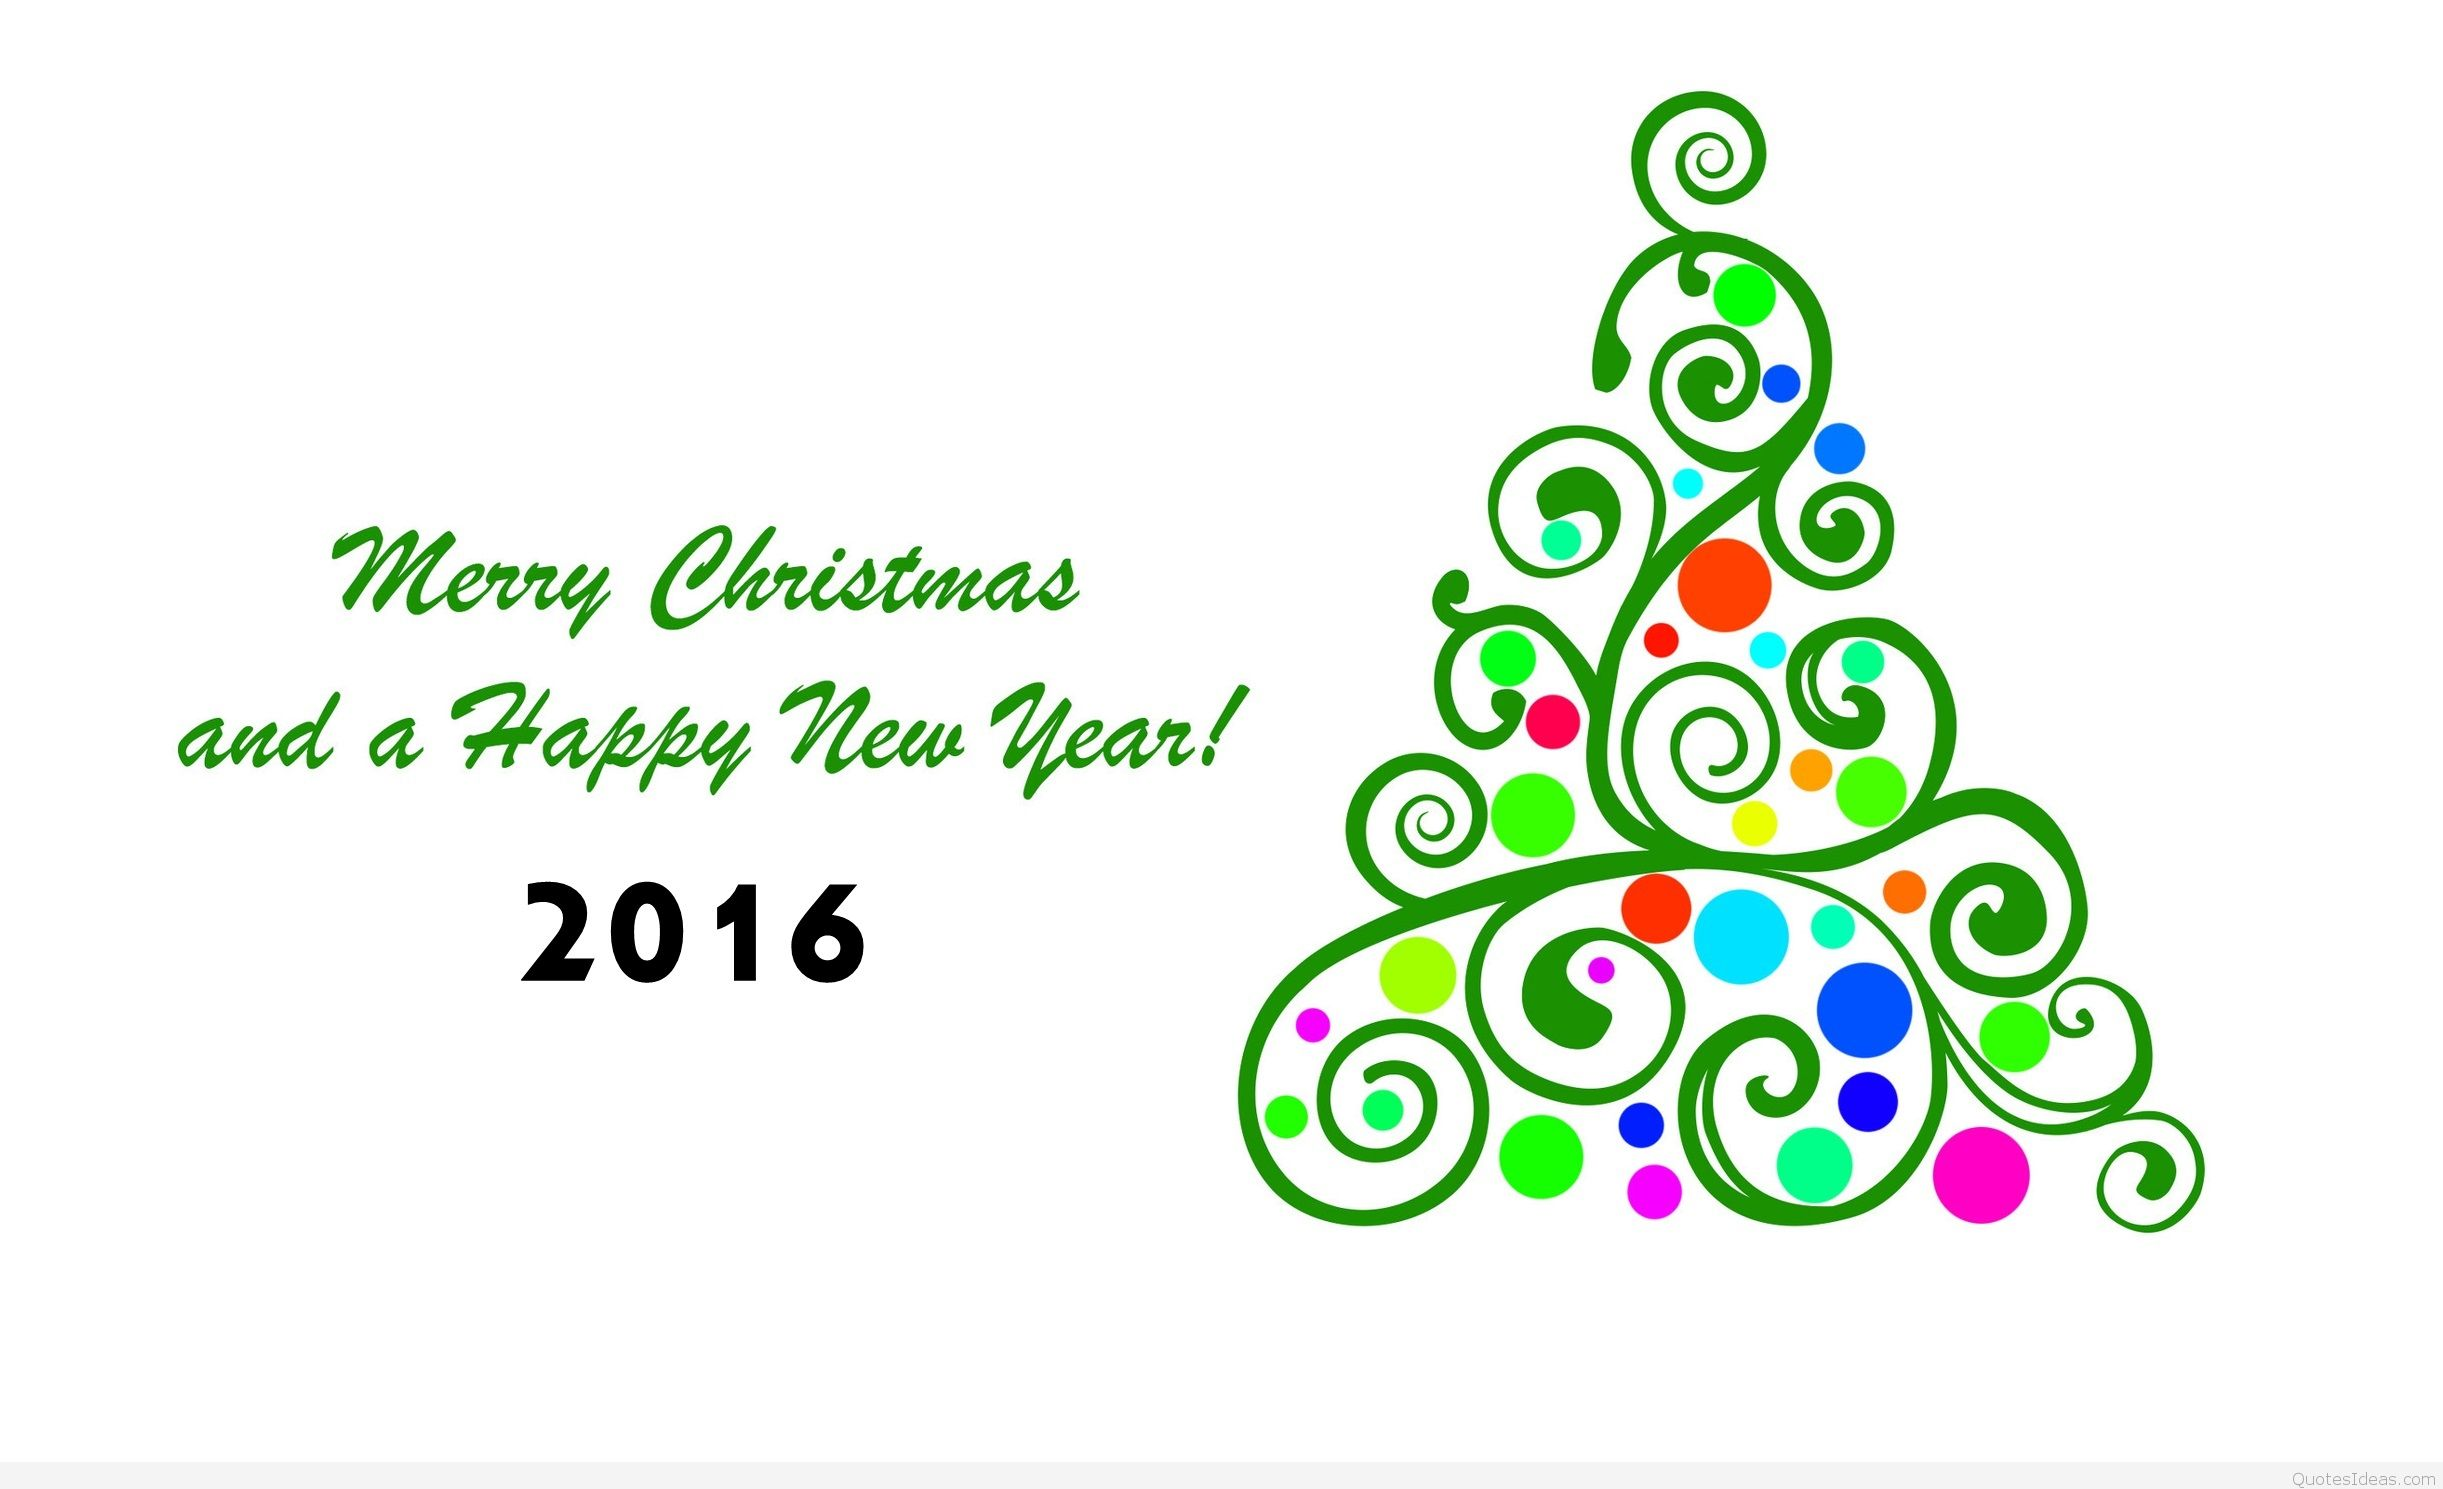 merry christmas and happy new year clip art free - photo #13